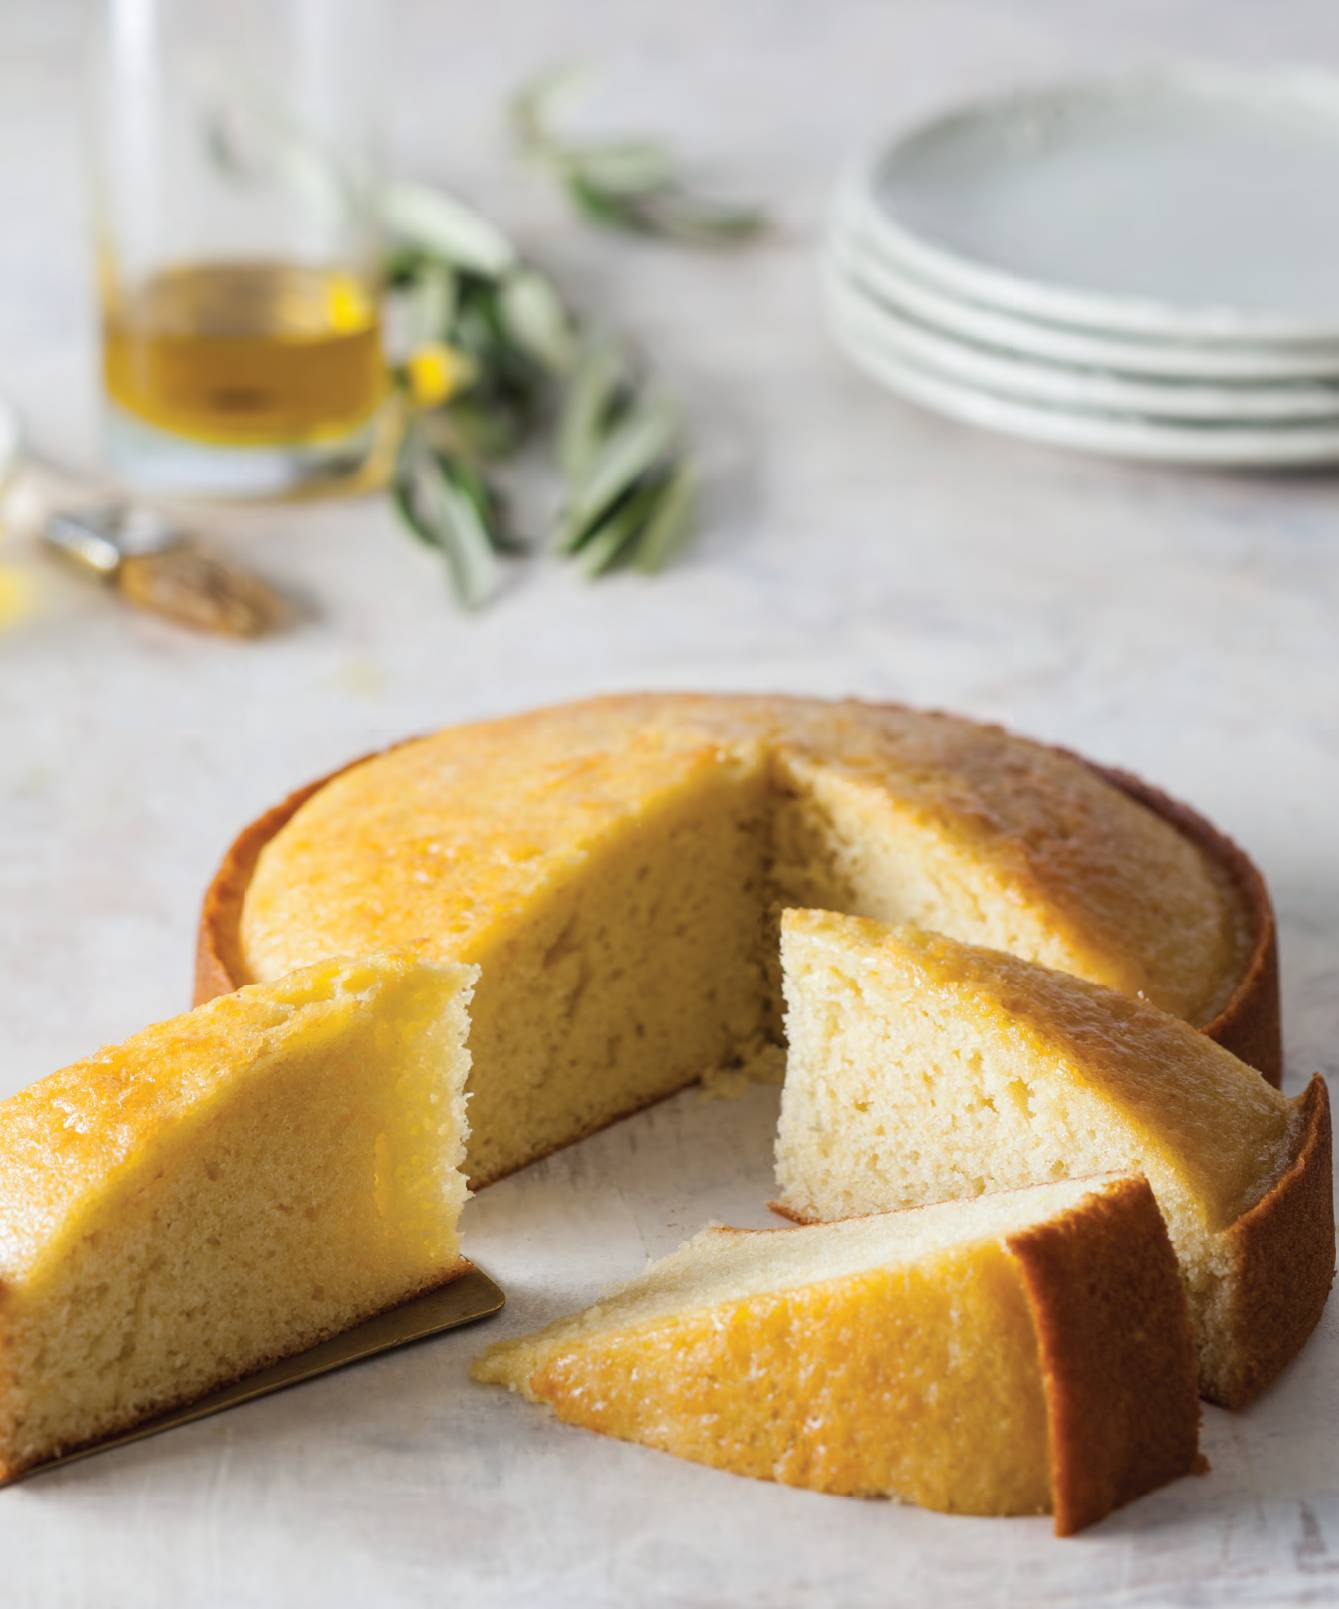 Classic Olive Oil Cake Bake From Scratch